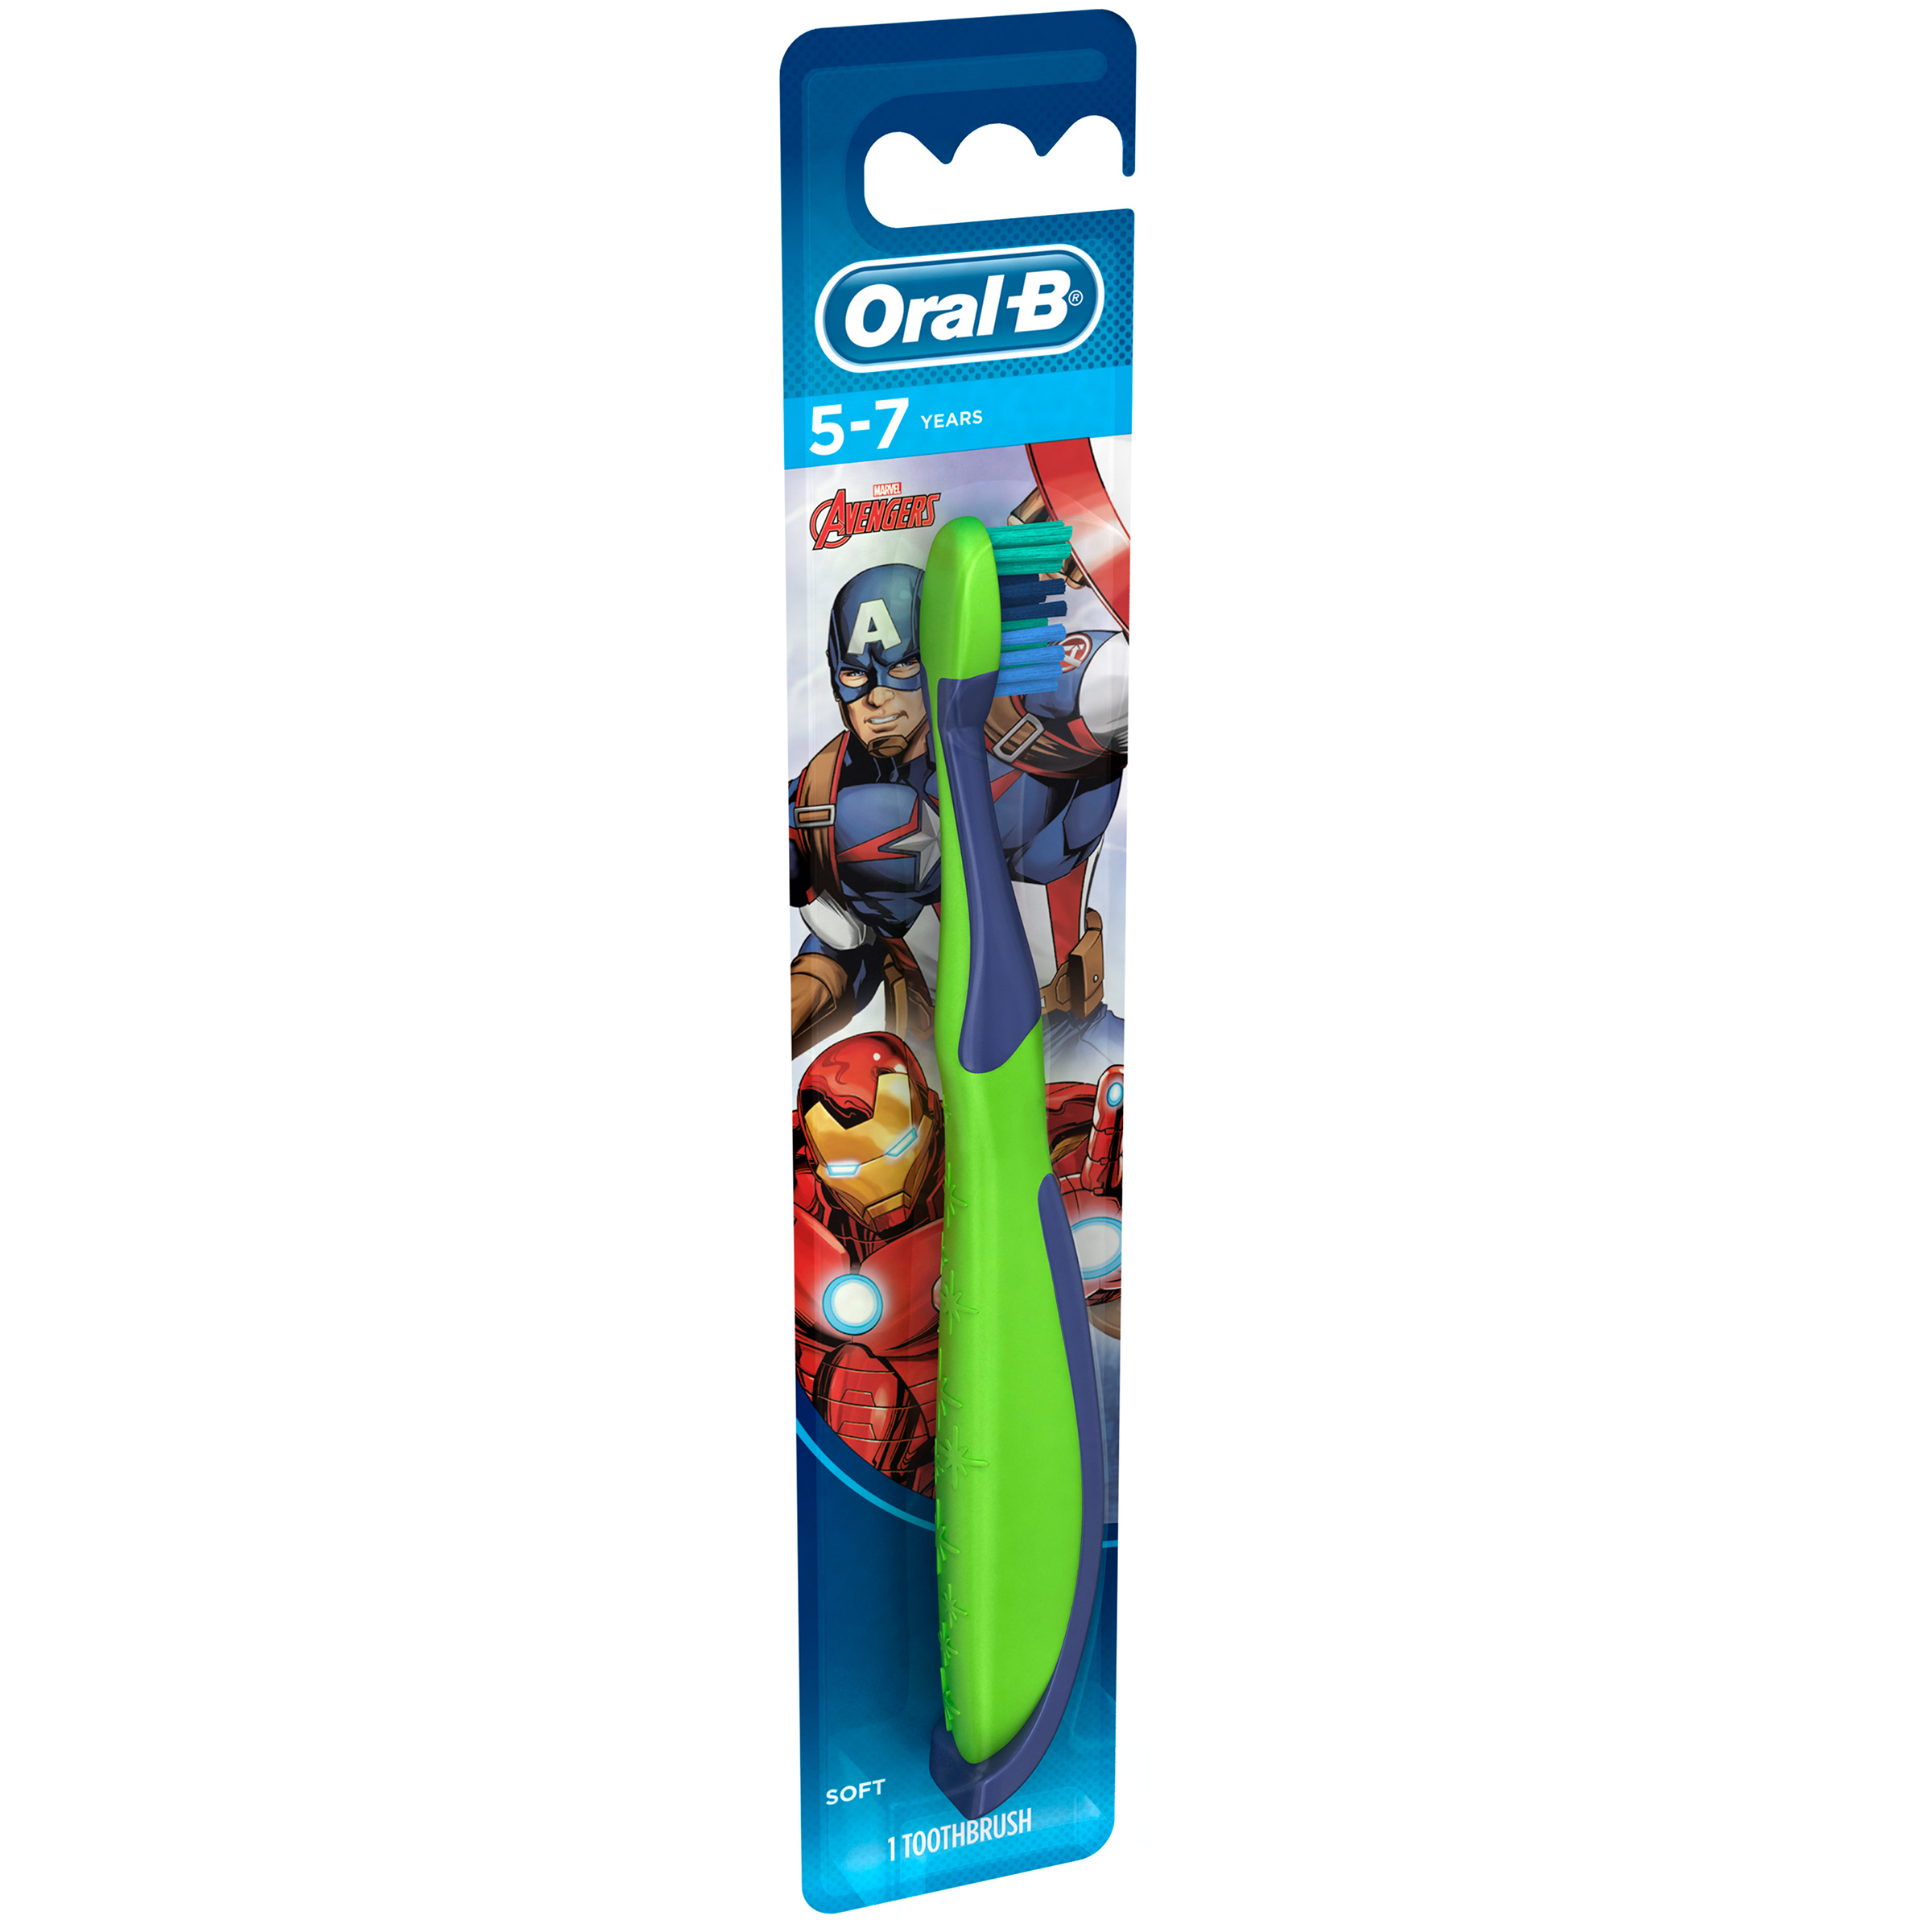 Oral-B Kid's Manual Toothbrush featuring Marvels Avengers, Soft Bristles, 1 count